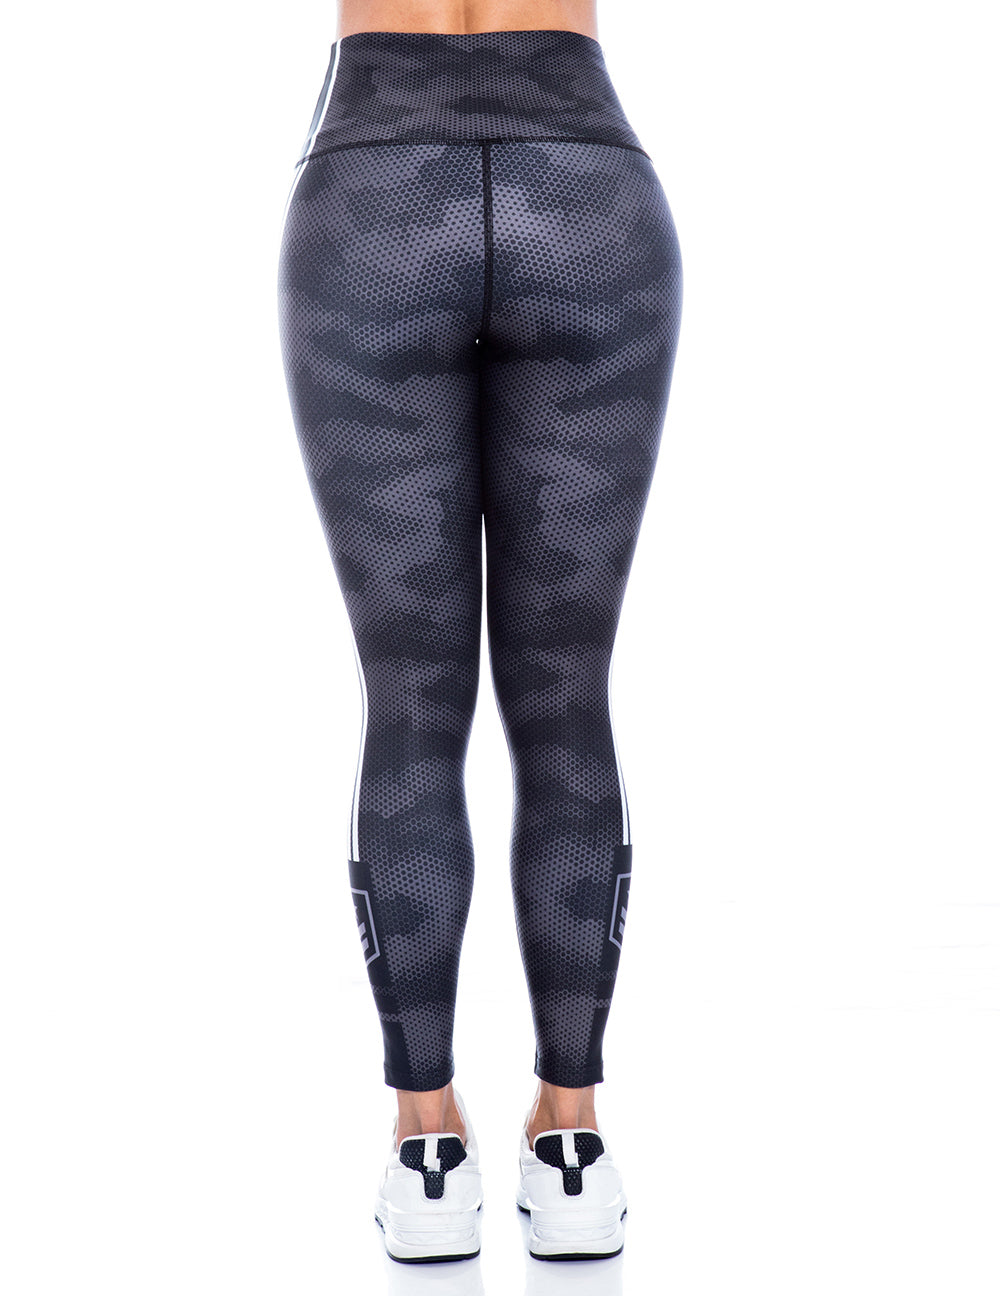 Dark Grey Armee Flag Leggings - Bestyfit